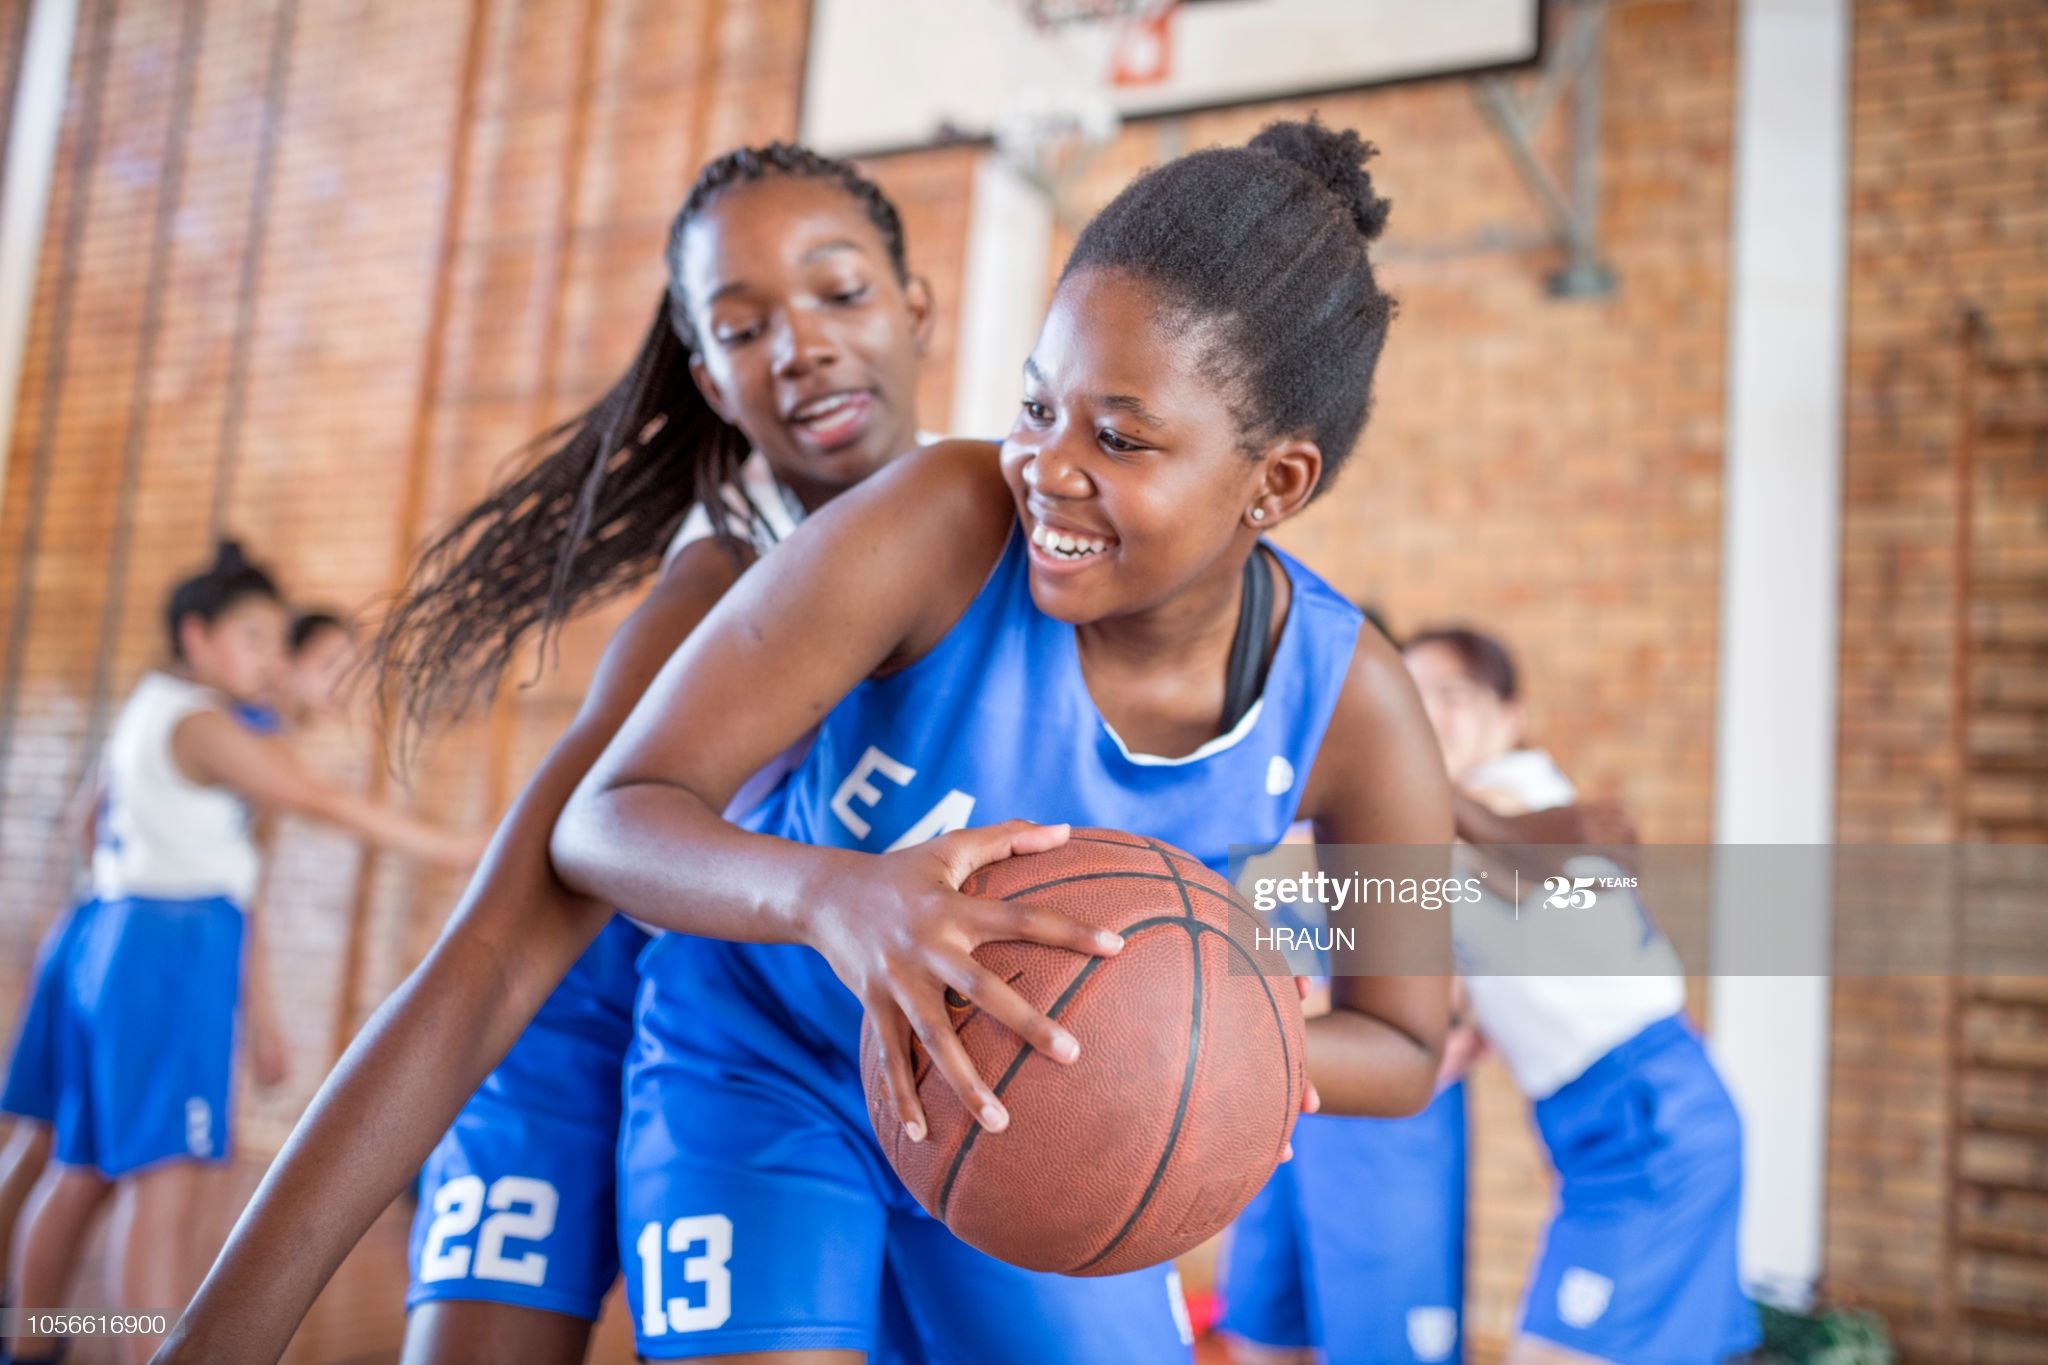 Smiling female defending basketball from opponent. Teenage girls are playing match in court. They are in sports uniform.